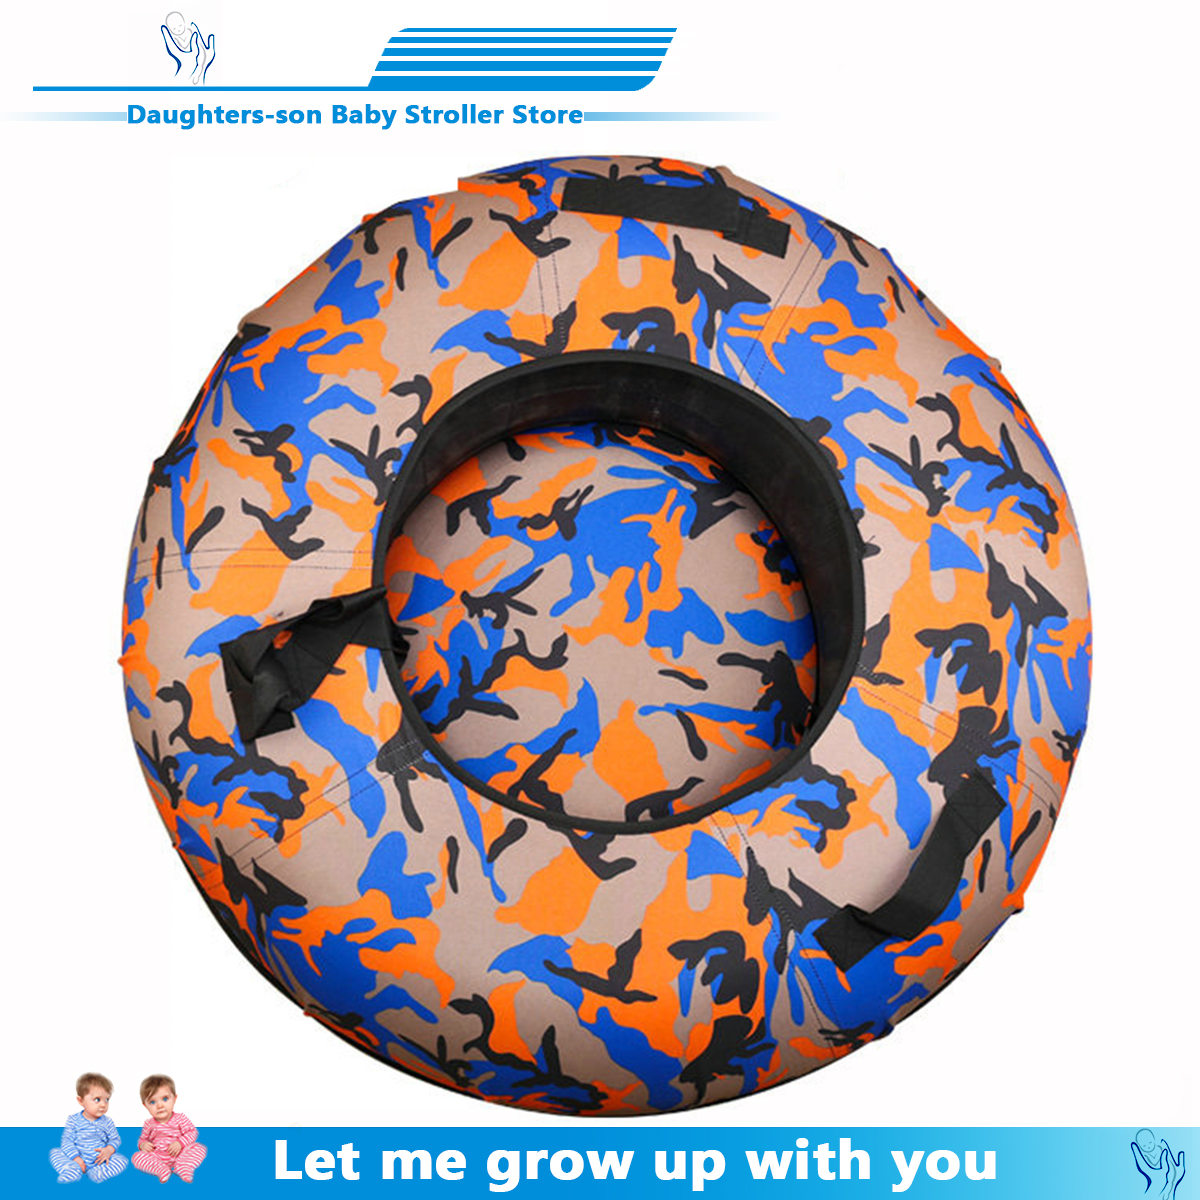 Snow Toy Winter Inflatable Ski Circle Ski Circle With Handle Durable Children Adult Snow Tube Skiing Thickened Floated Sled